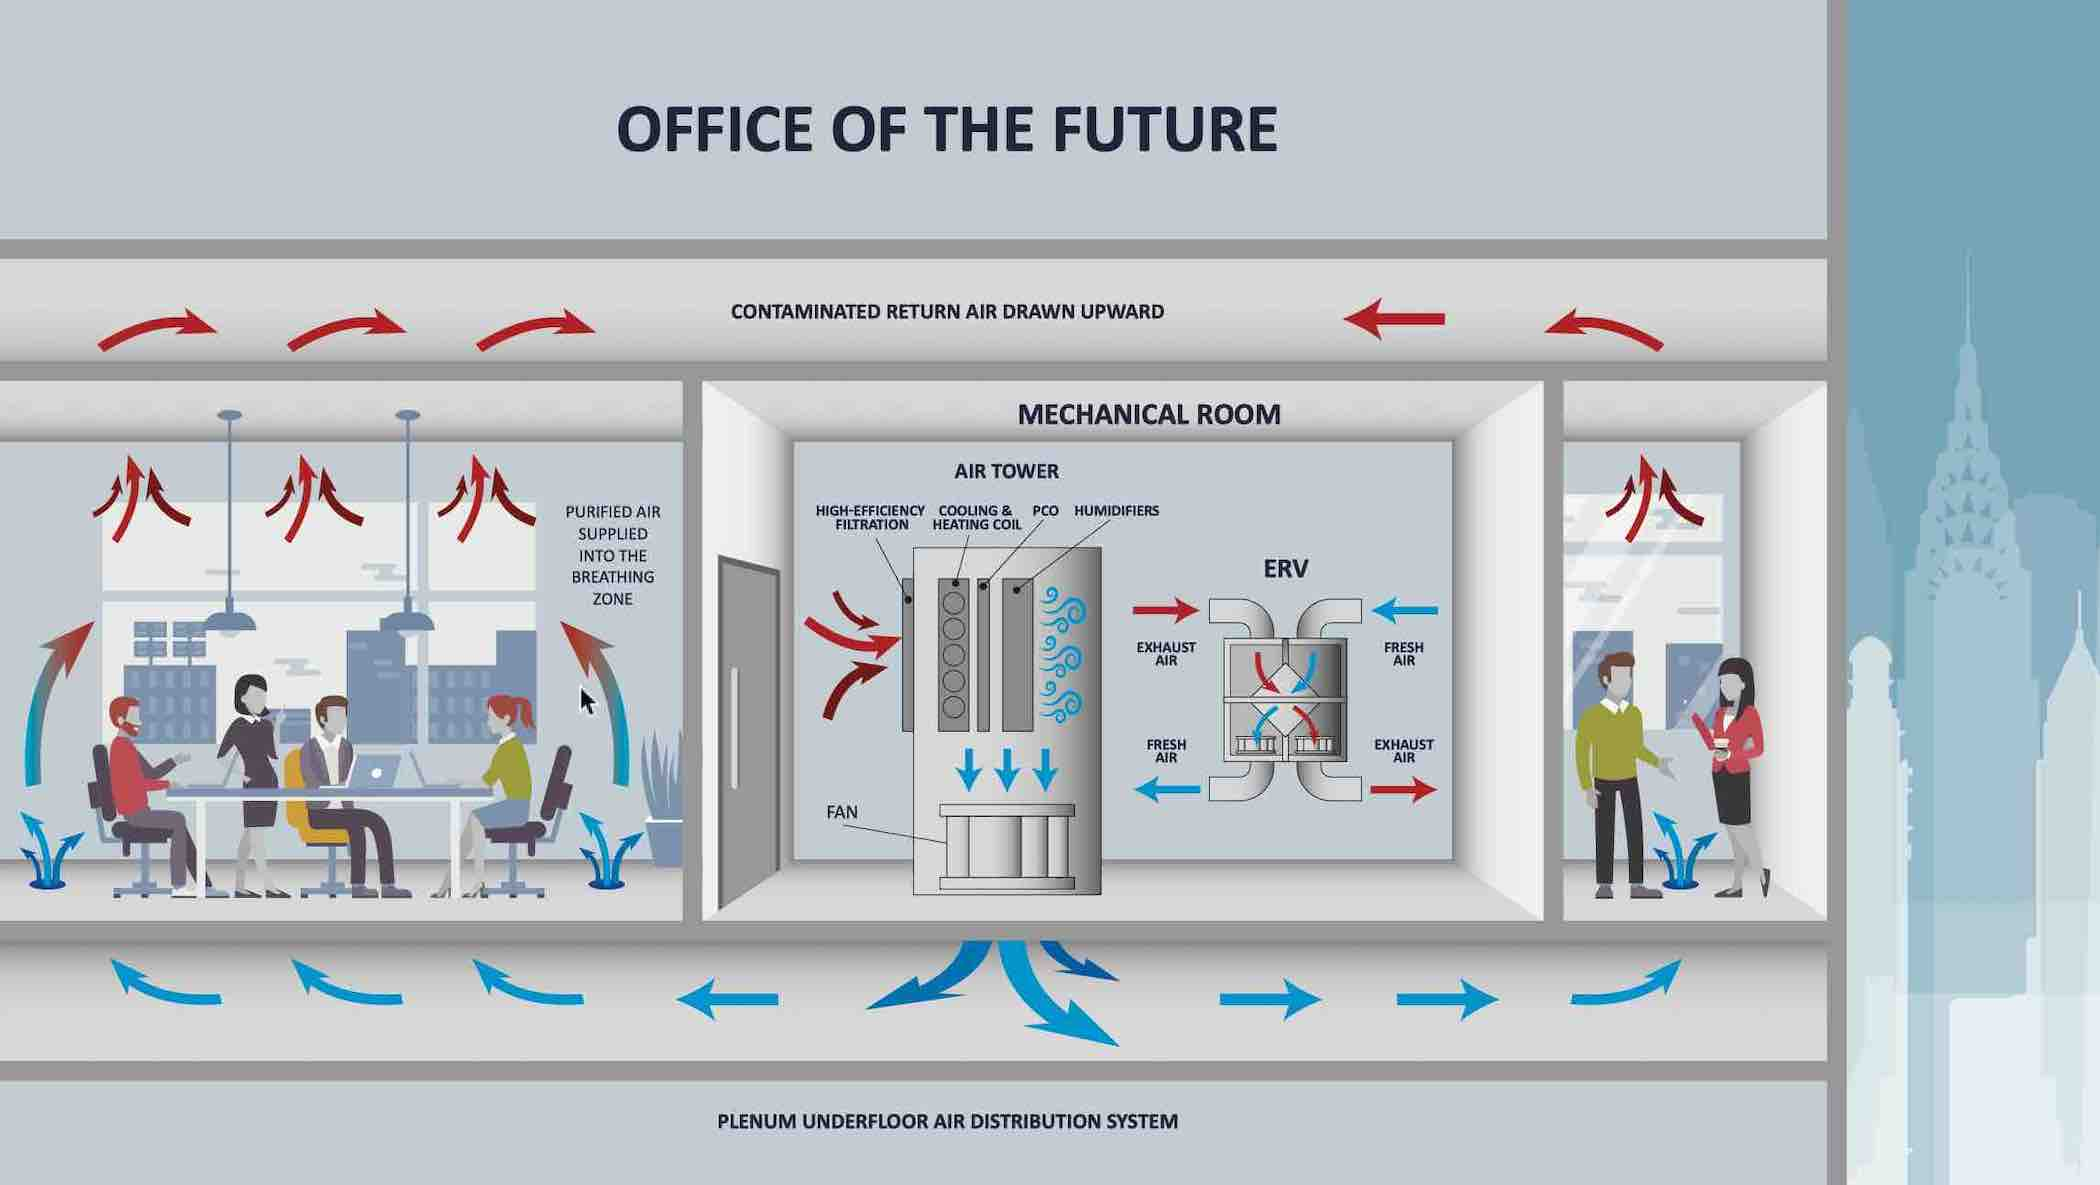 Office of the Future - 4 Strategies